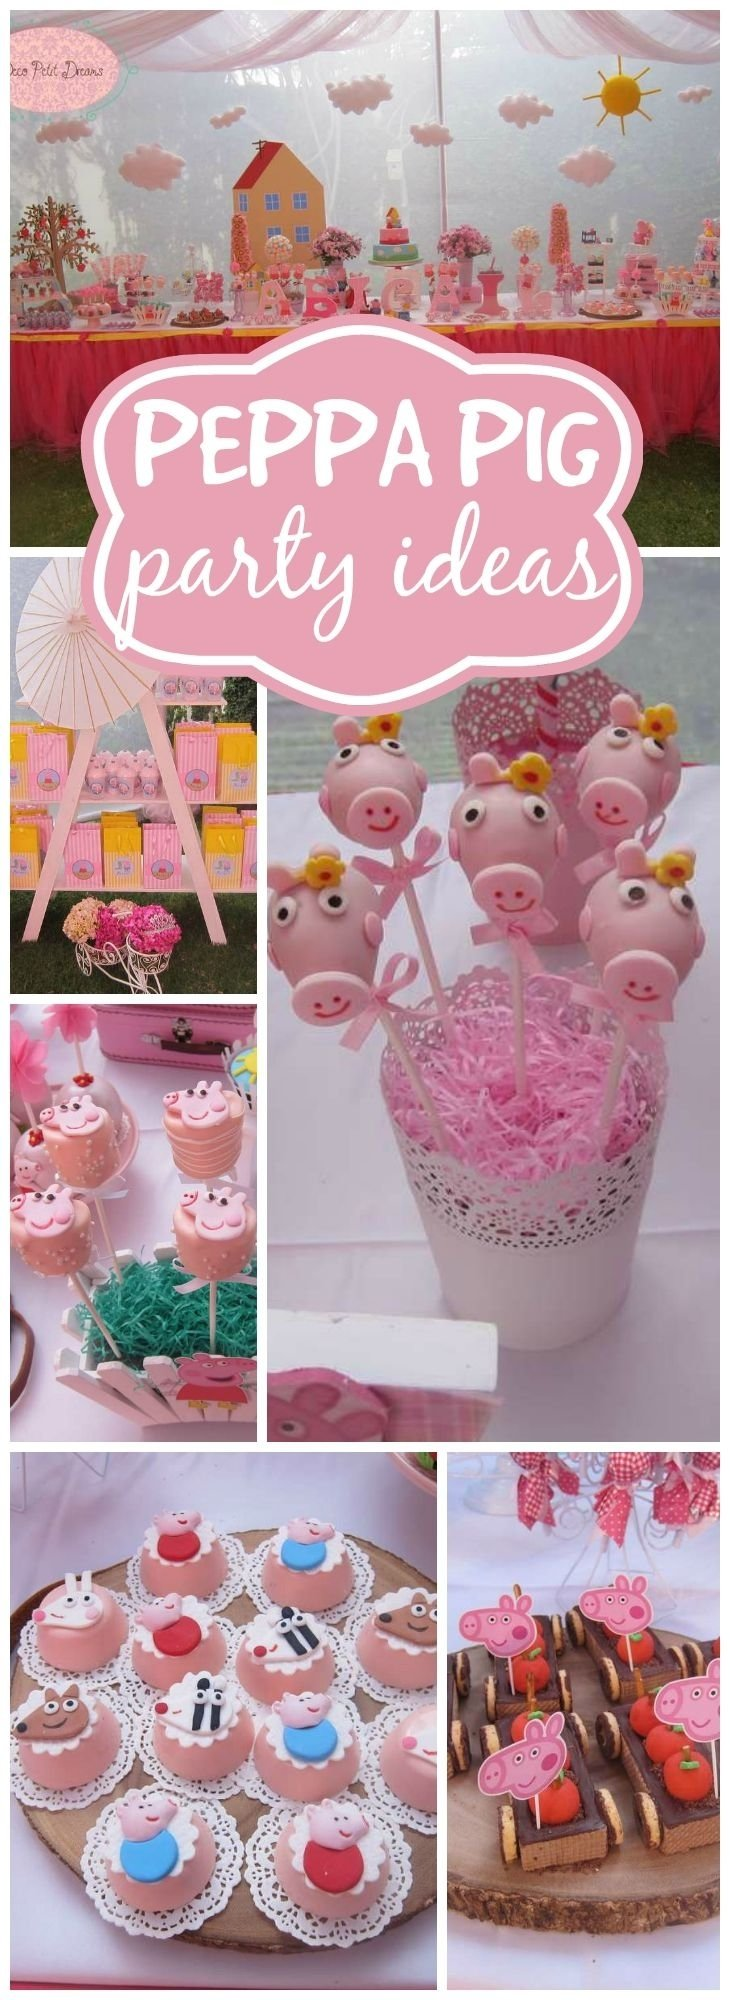 10 Great Birthday Party Ideas For Girls Age 6 293 best peppa pig party ideas images on pinterest anniversary